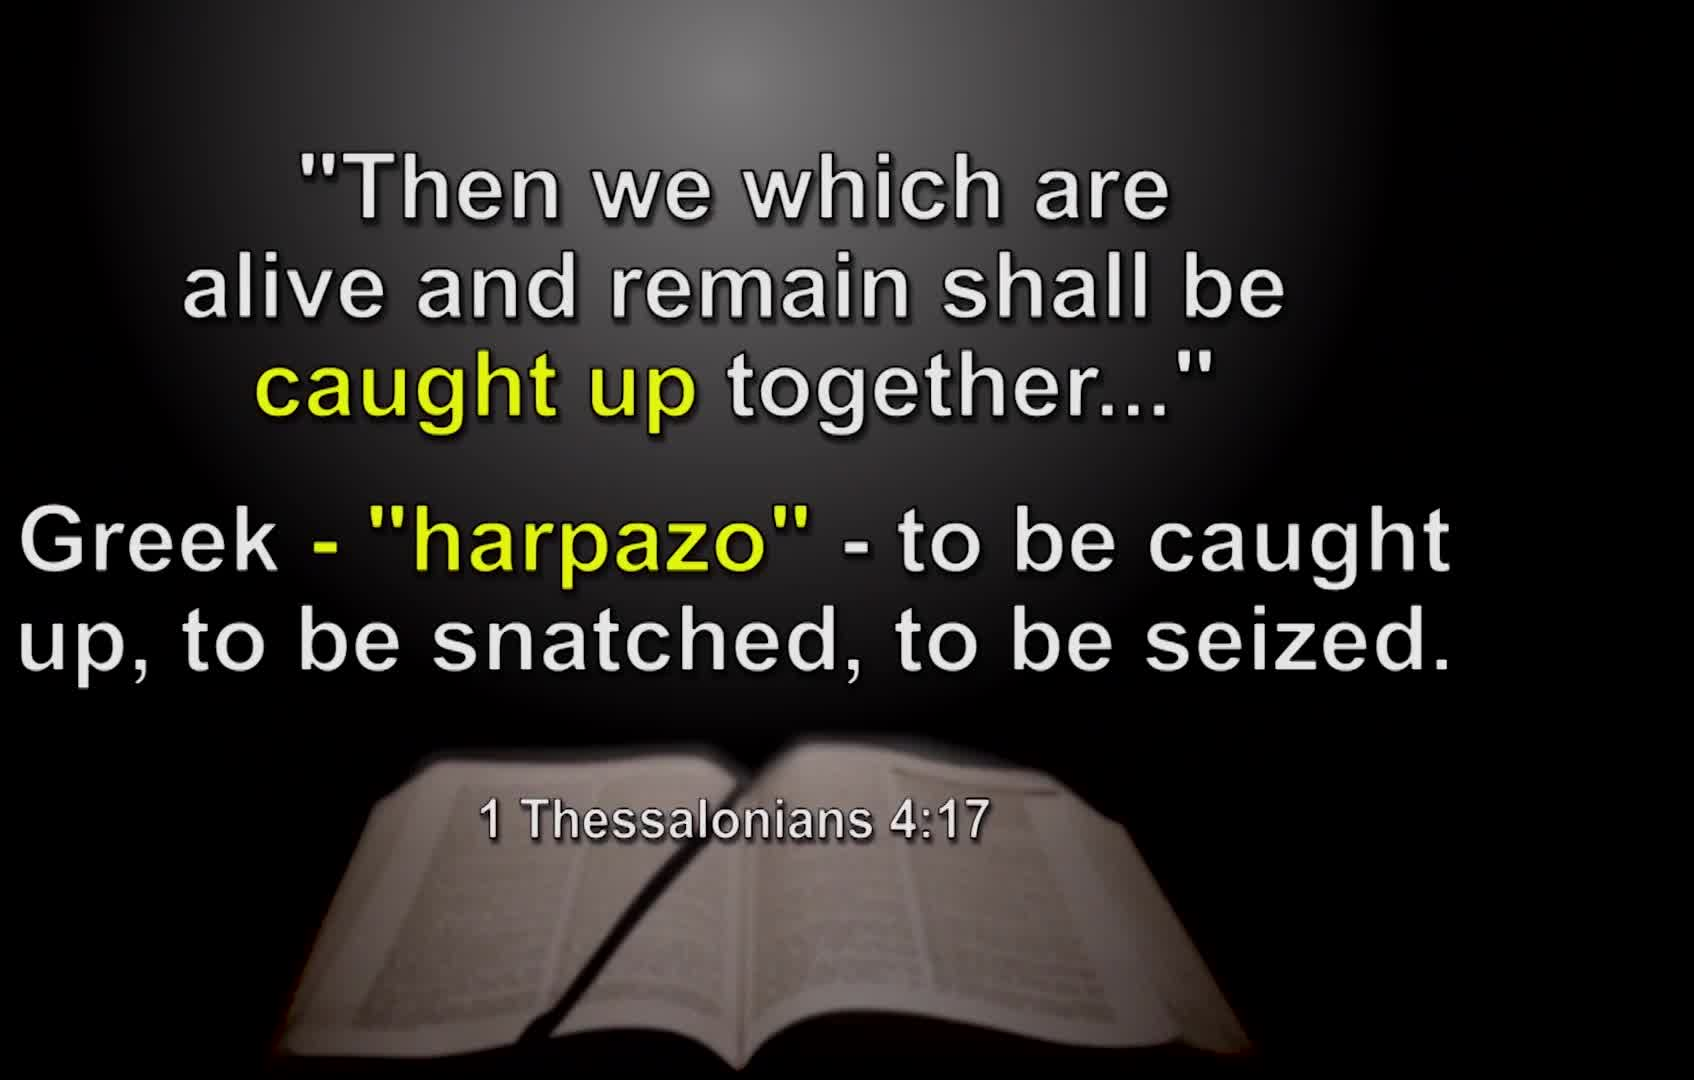 What will happen to Christians at the rapture?